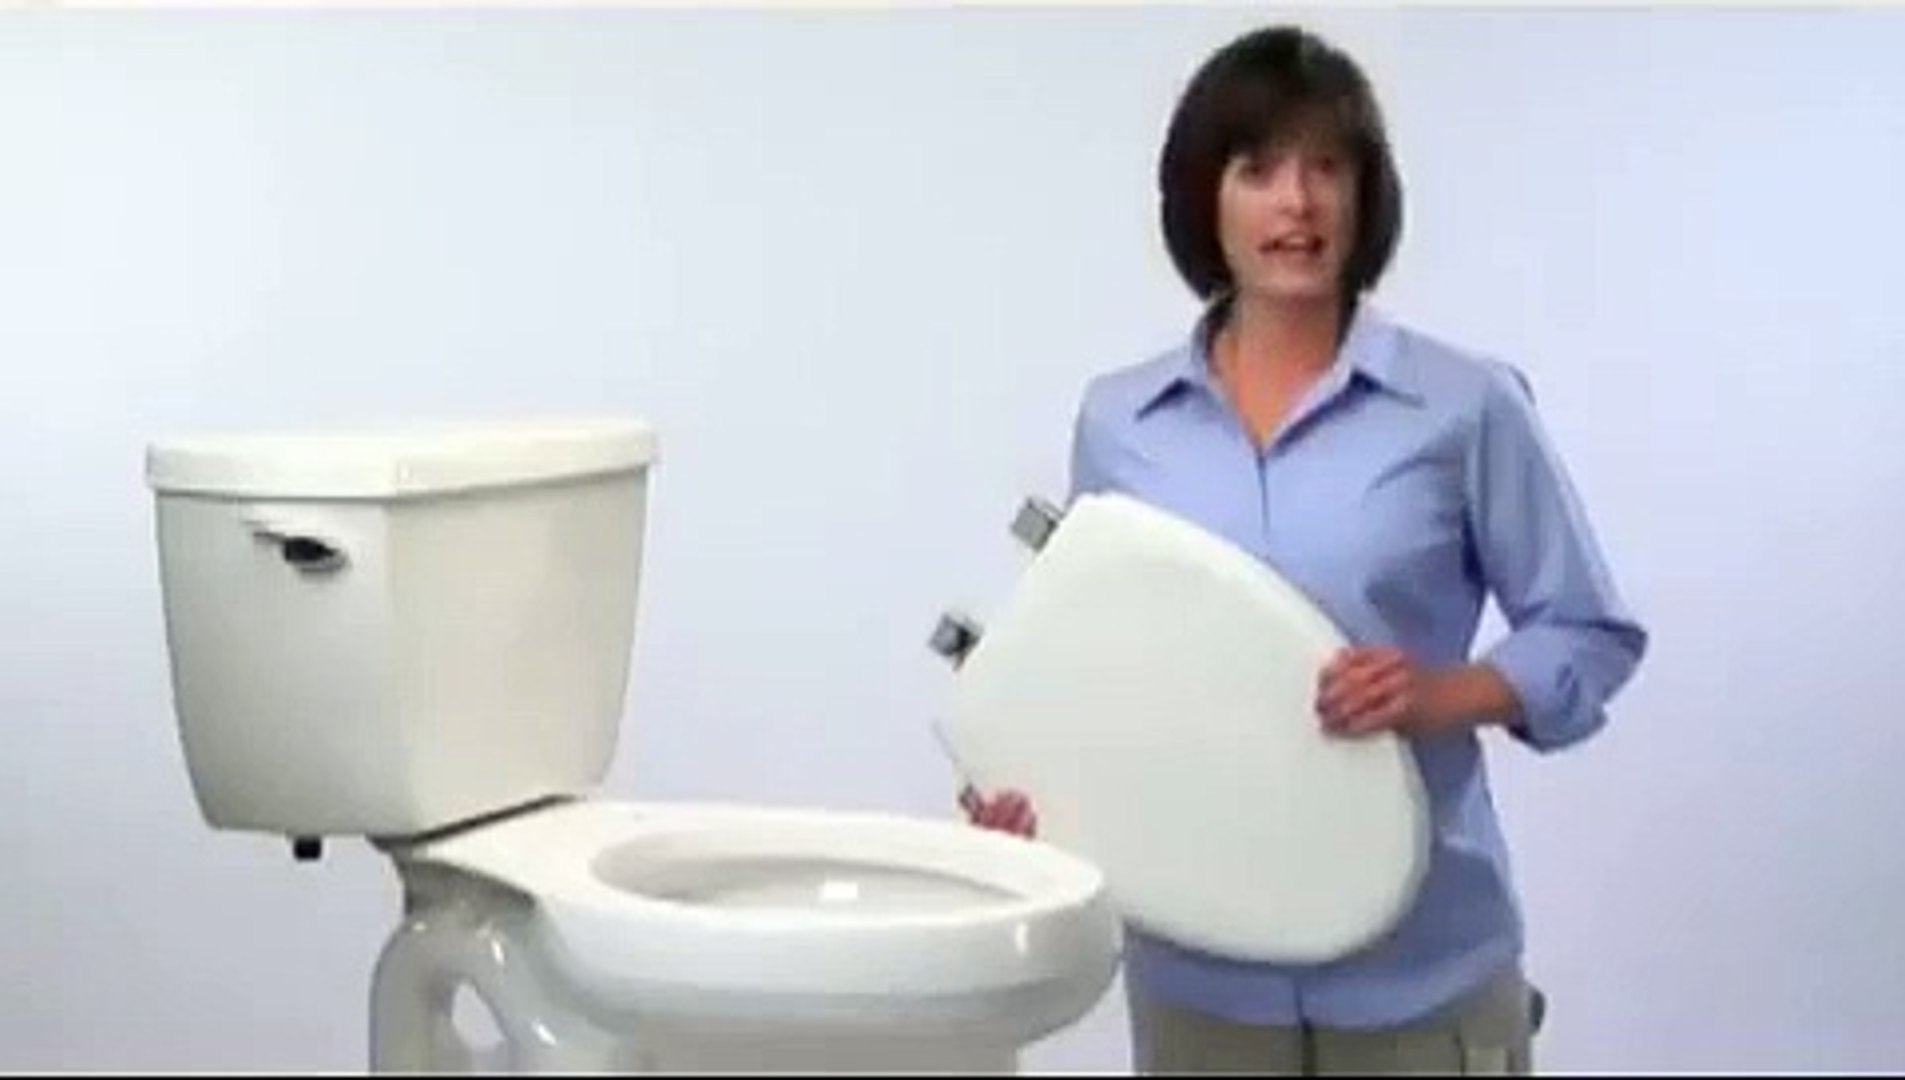 Marvelous Bemis How To Install Easy Clean Change With Sta Tite Fastening System Toilet Seat Machost Co Dining Chair Design Ideas Machostcouk